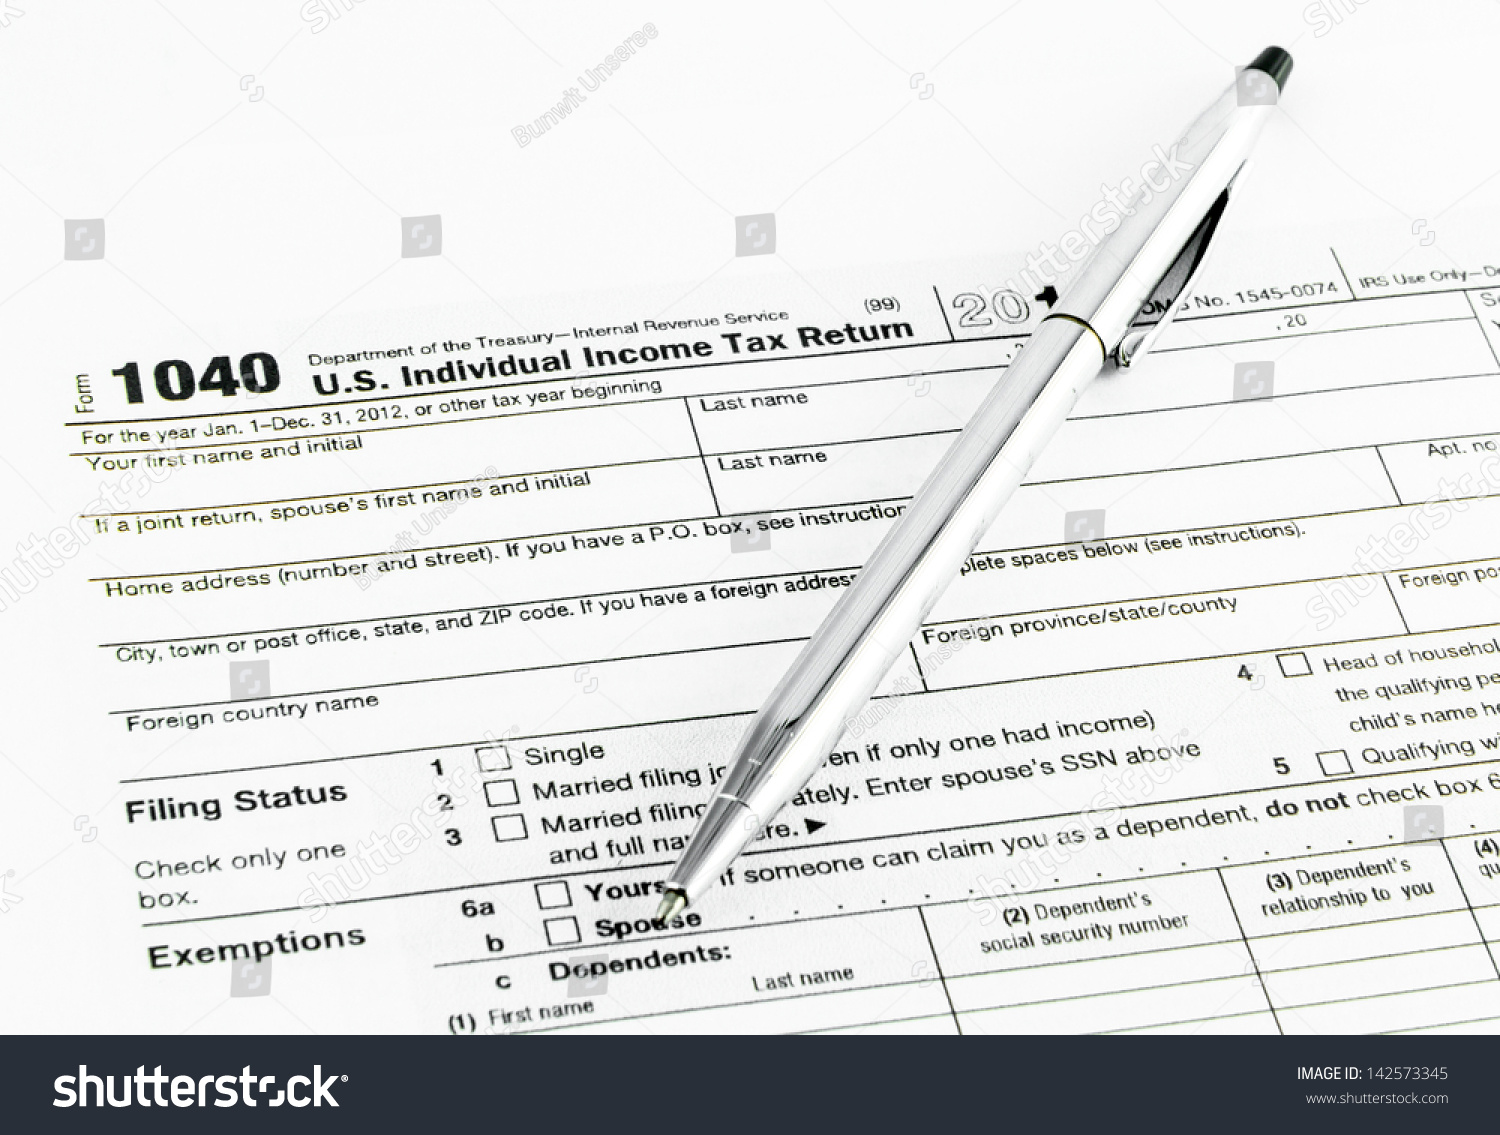 Tax form 1040 tax year 2012 stock photo 142573345 shutterstock tax form 1040 for tax year 2012 falaconquin